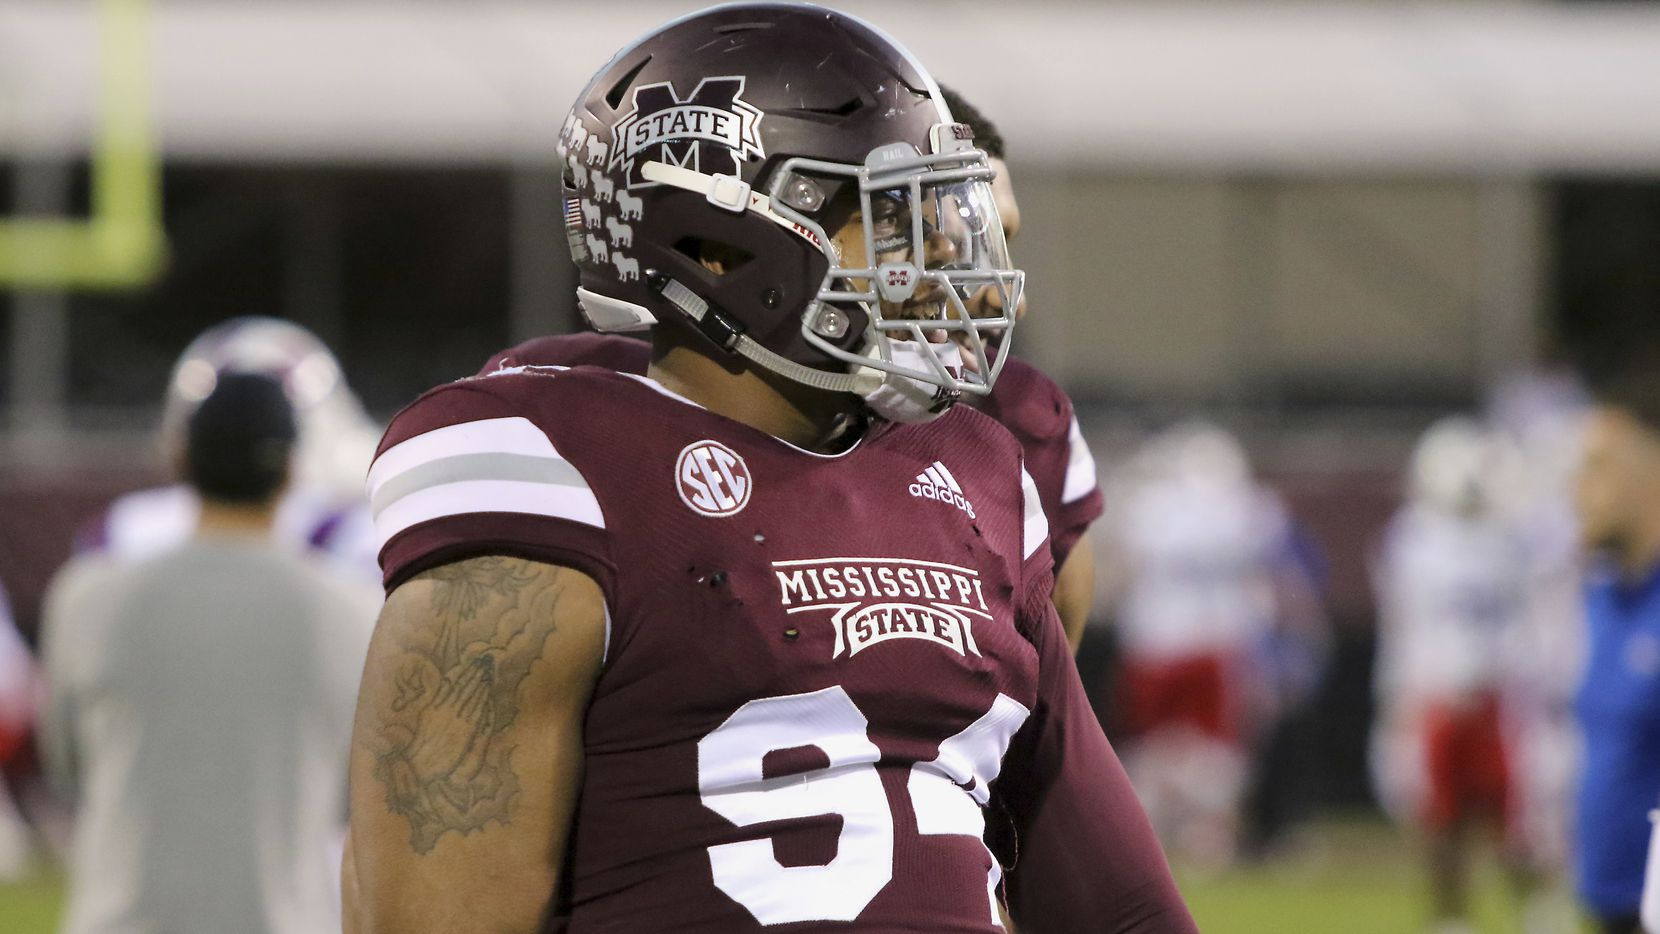 FILE - Mississippi State defensive tackle Jeffery Simmons (94) is pictured during warm-up drills before a game against Louisiana Tech on Saturday, Nov. 3, 2018, in Starkville, Miss. (AP Photo/Jim Lytle)